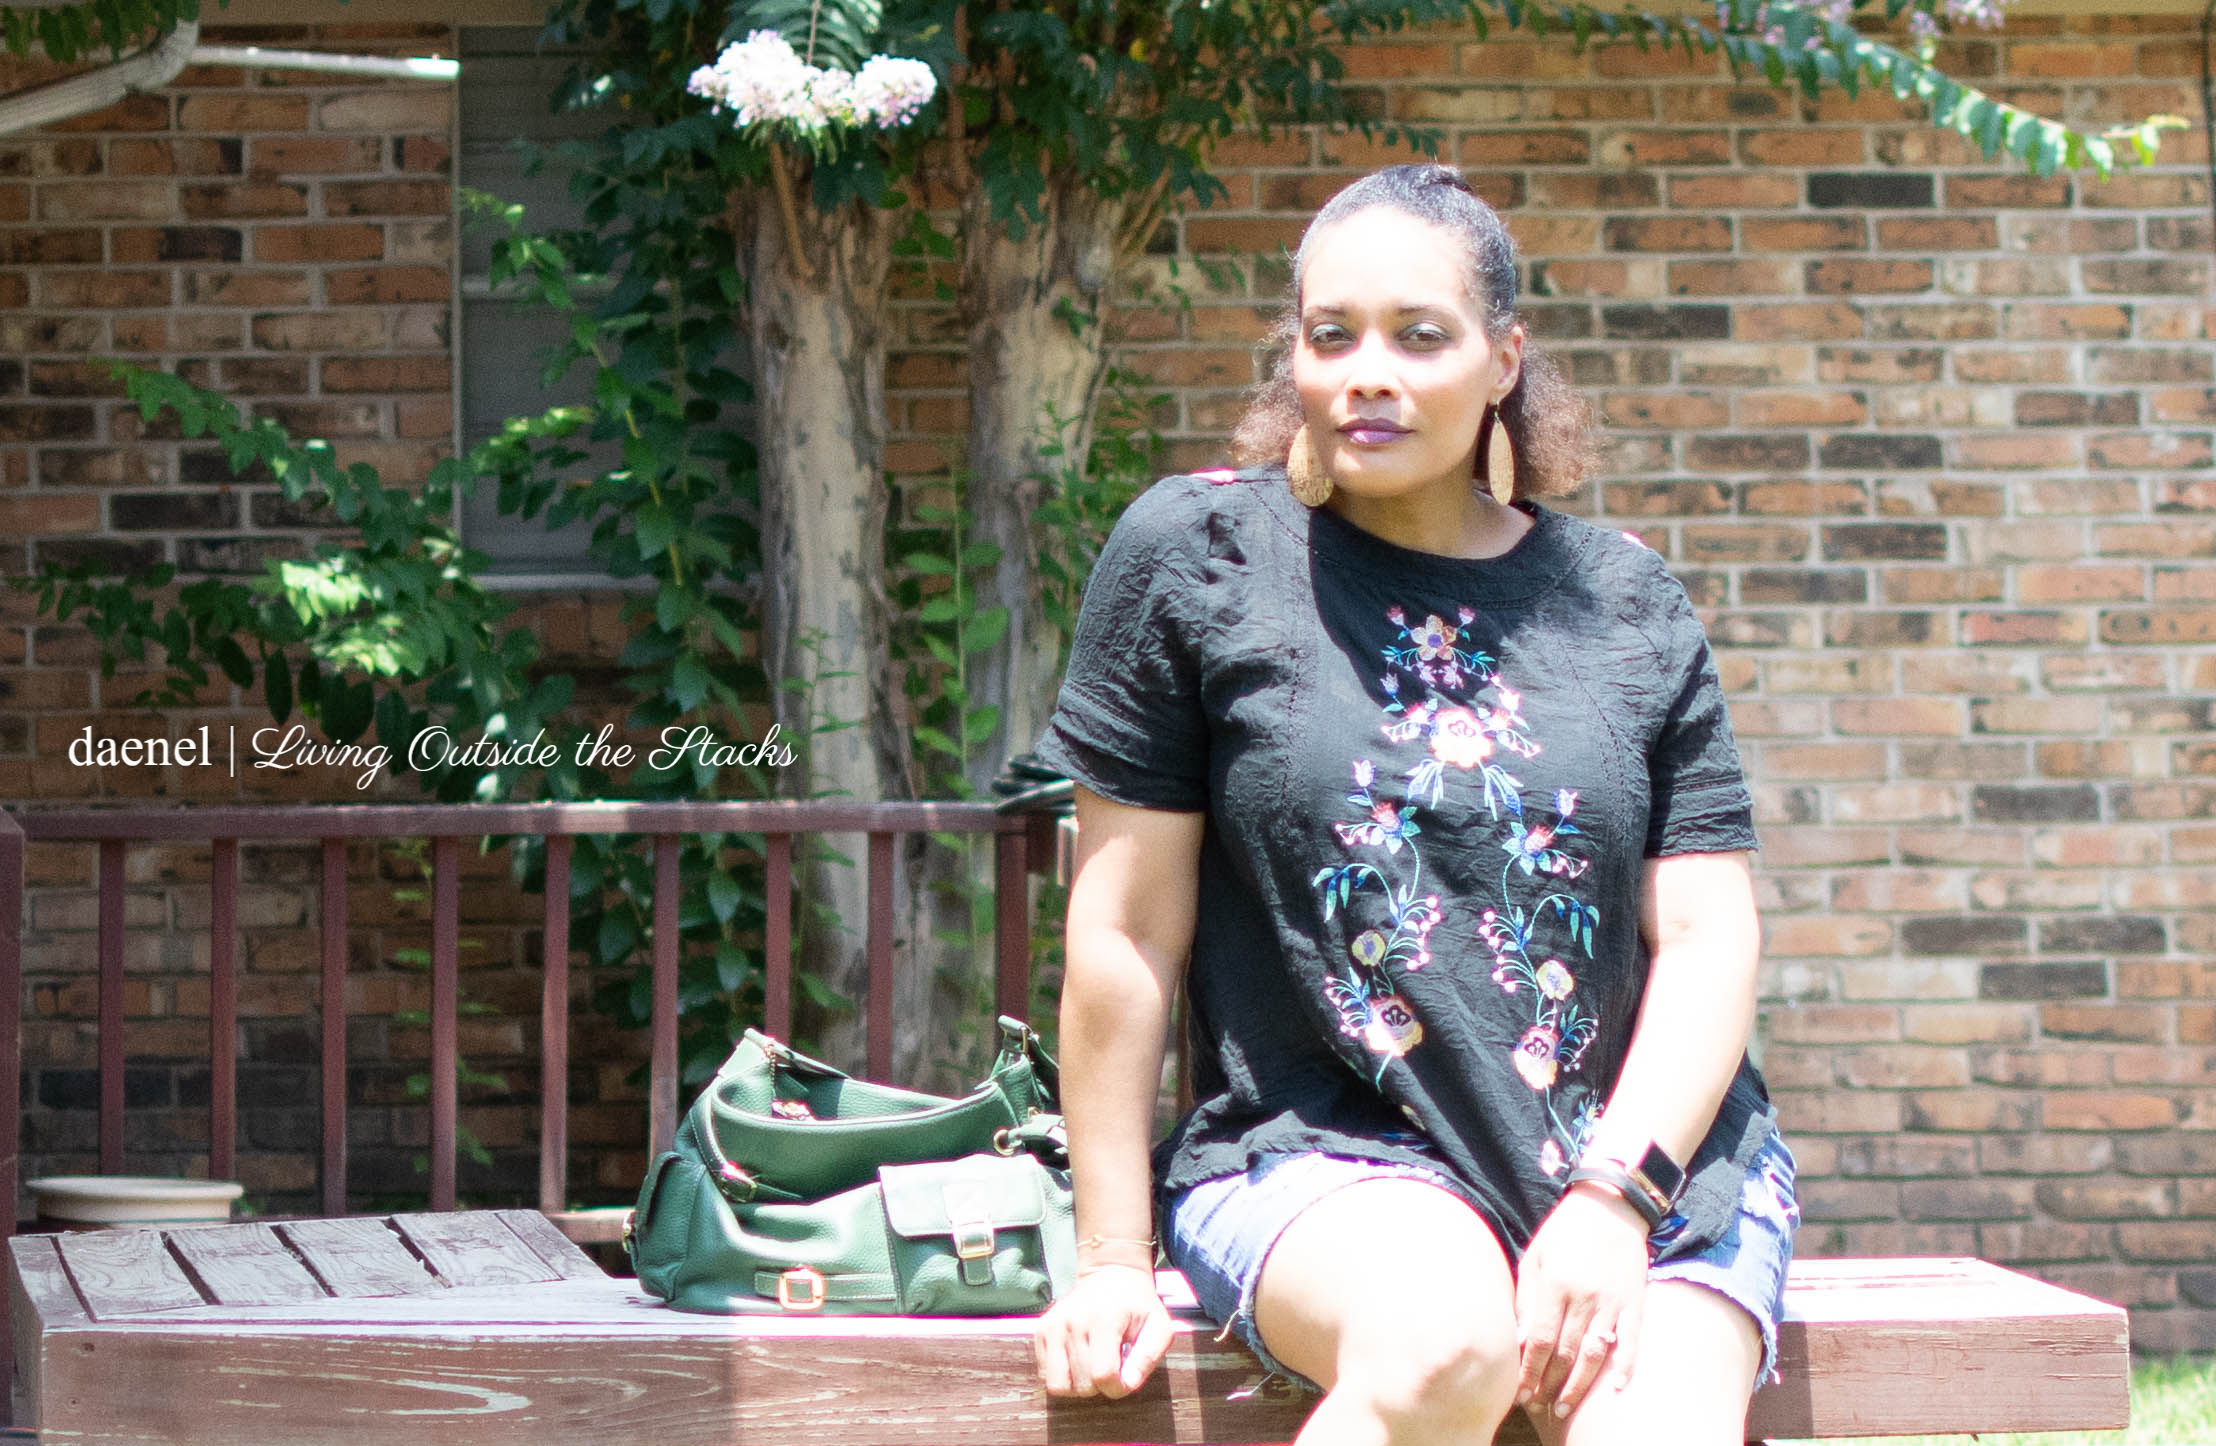 Flexi Clips Review {living outside the stacks}